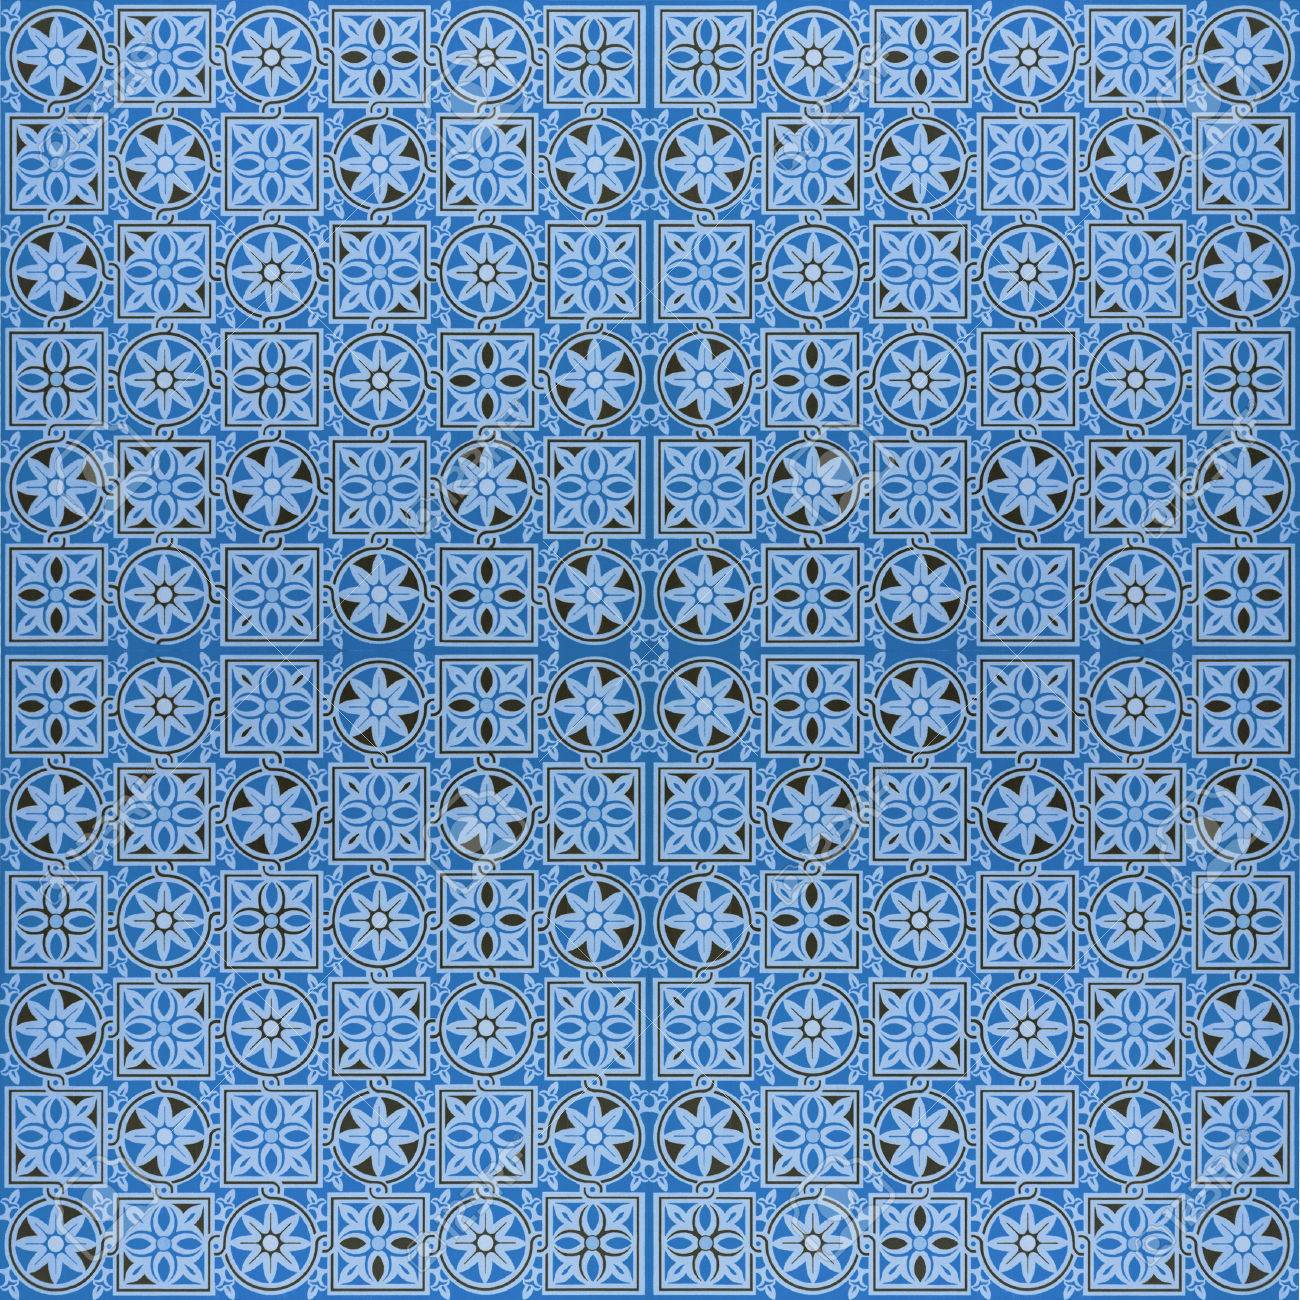 Ceramic Tiles Patterns Stock Photo, Picture And Royalty Free Image ...